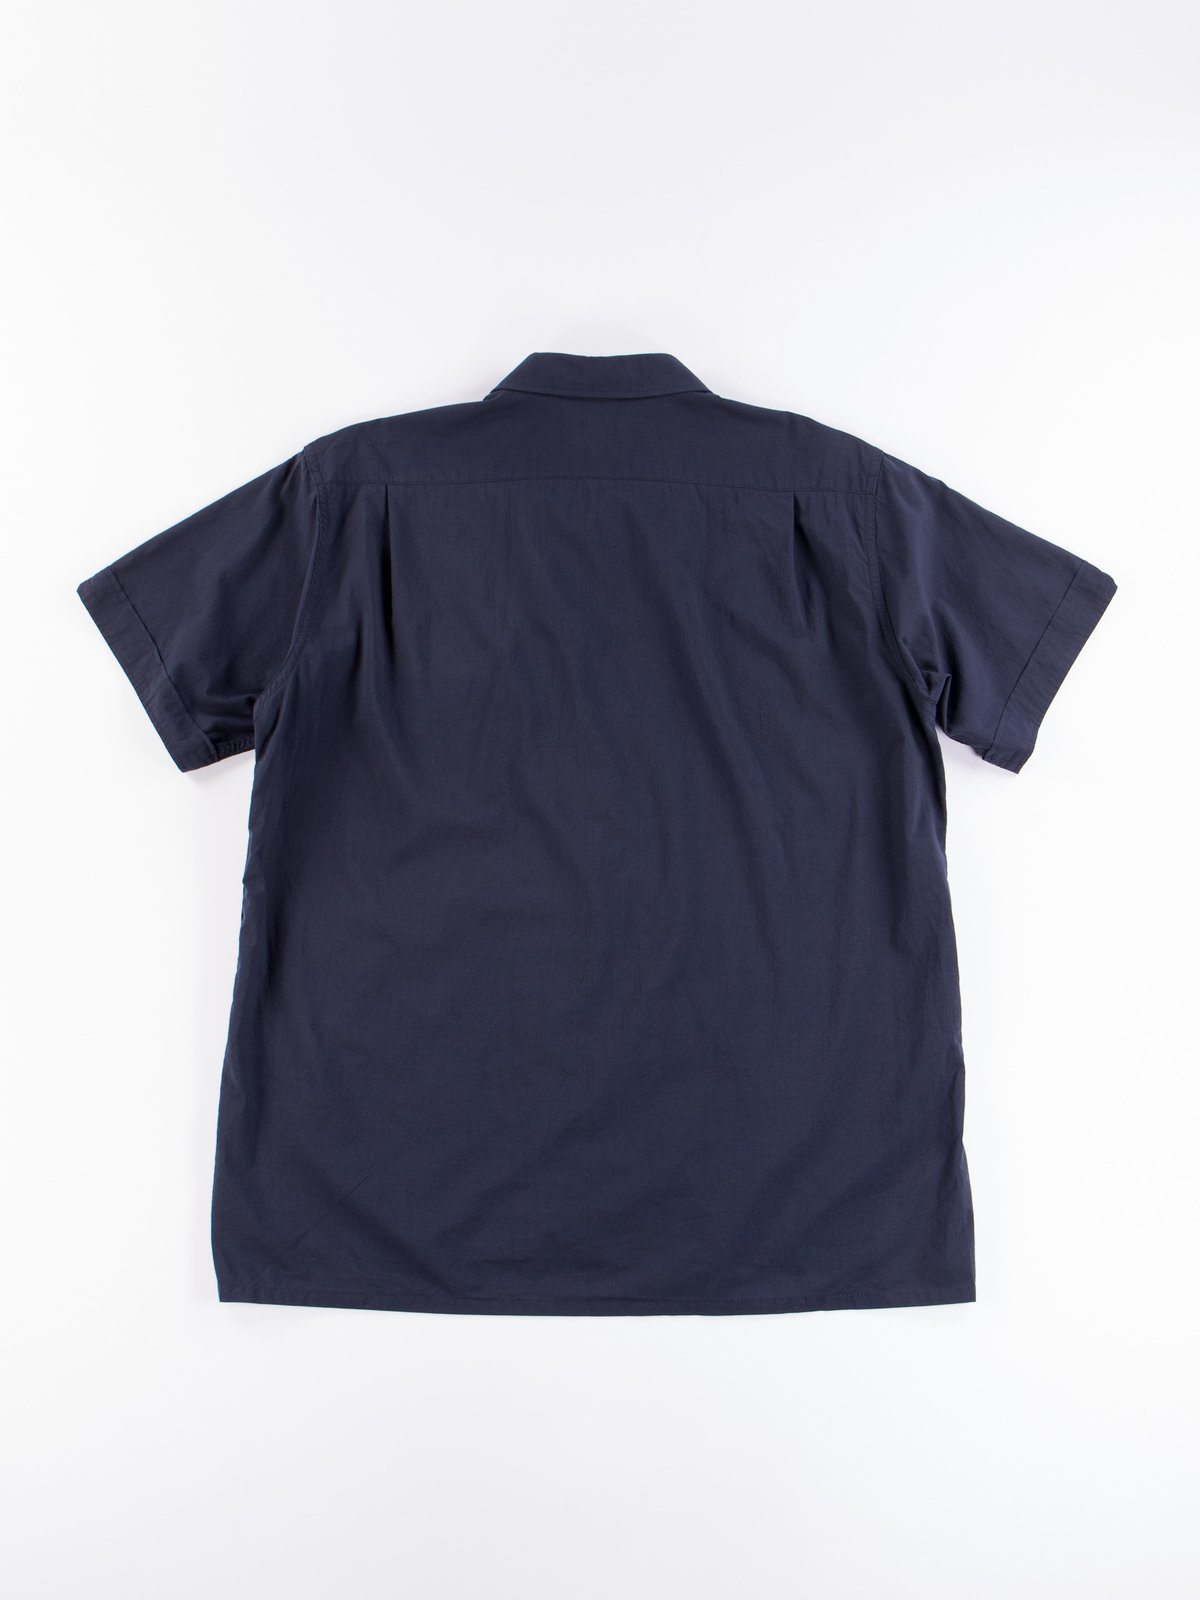 Navy Solid Cotton Lawn Camp Shirt  - Image 5